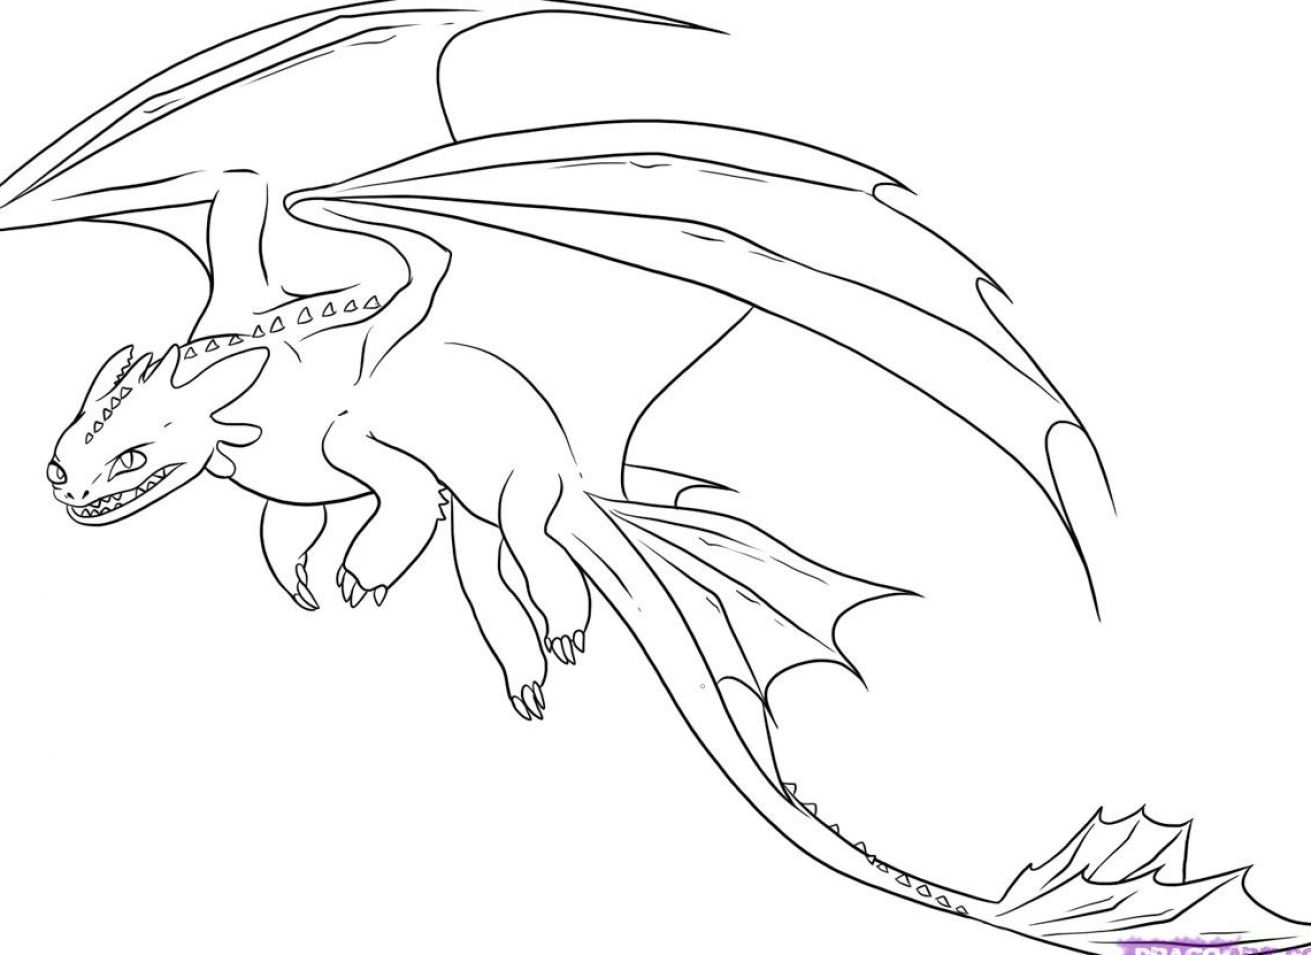 Printable coloring pages of dragons - Toothless Dragon Coloring Pages Google Search